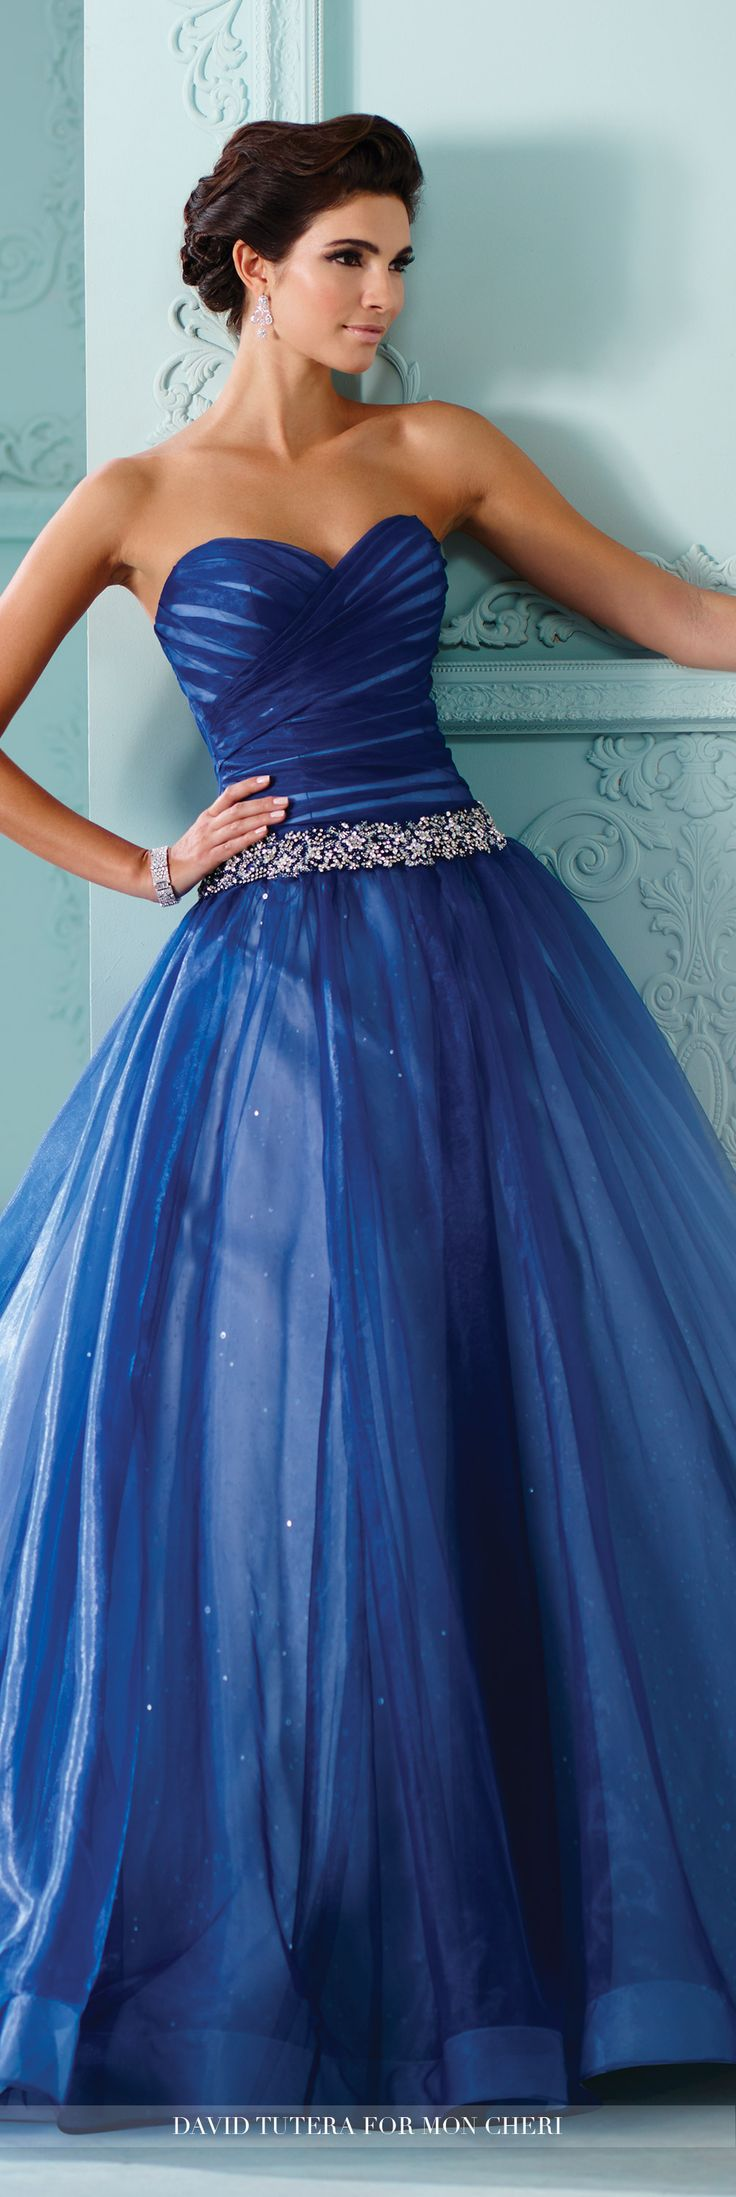 David Tutera for Mon Cheri - 216257 Indigo - Strapless organza over sequined tulle and satin ball gown with sweetheart neckline, directionally ruched bodice with attached jewel encrusted belt at dropped waist, full gathered skirt, horsehair hem, cathedral length train, detachable spaghetti and halter straps included.  Sizes: 0-20, 18W-26W  Tea Rose, Sapphire, Ivory